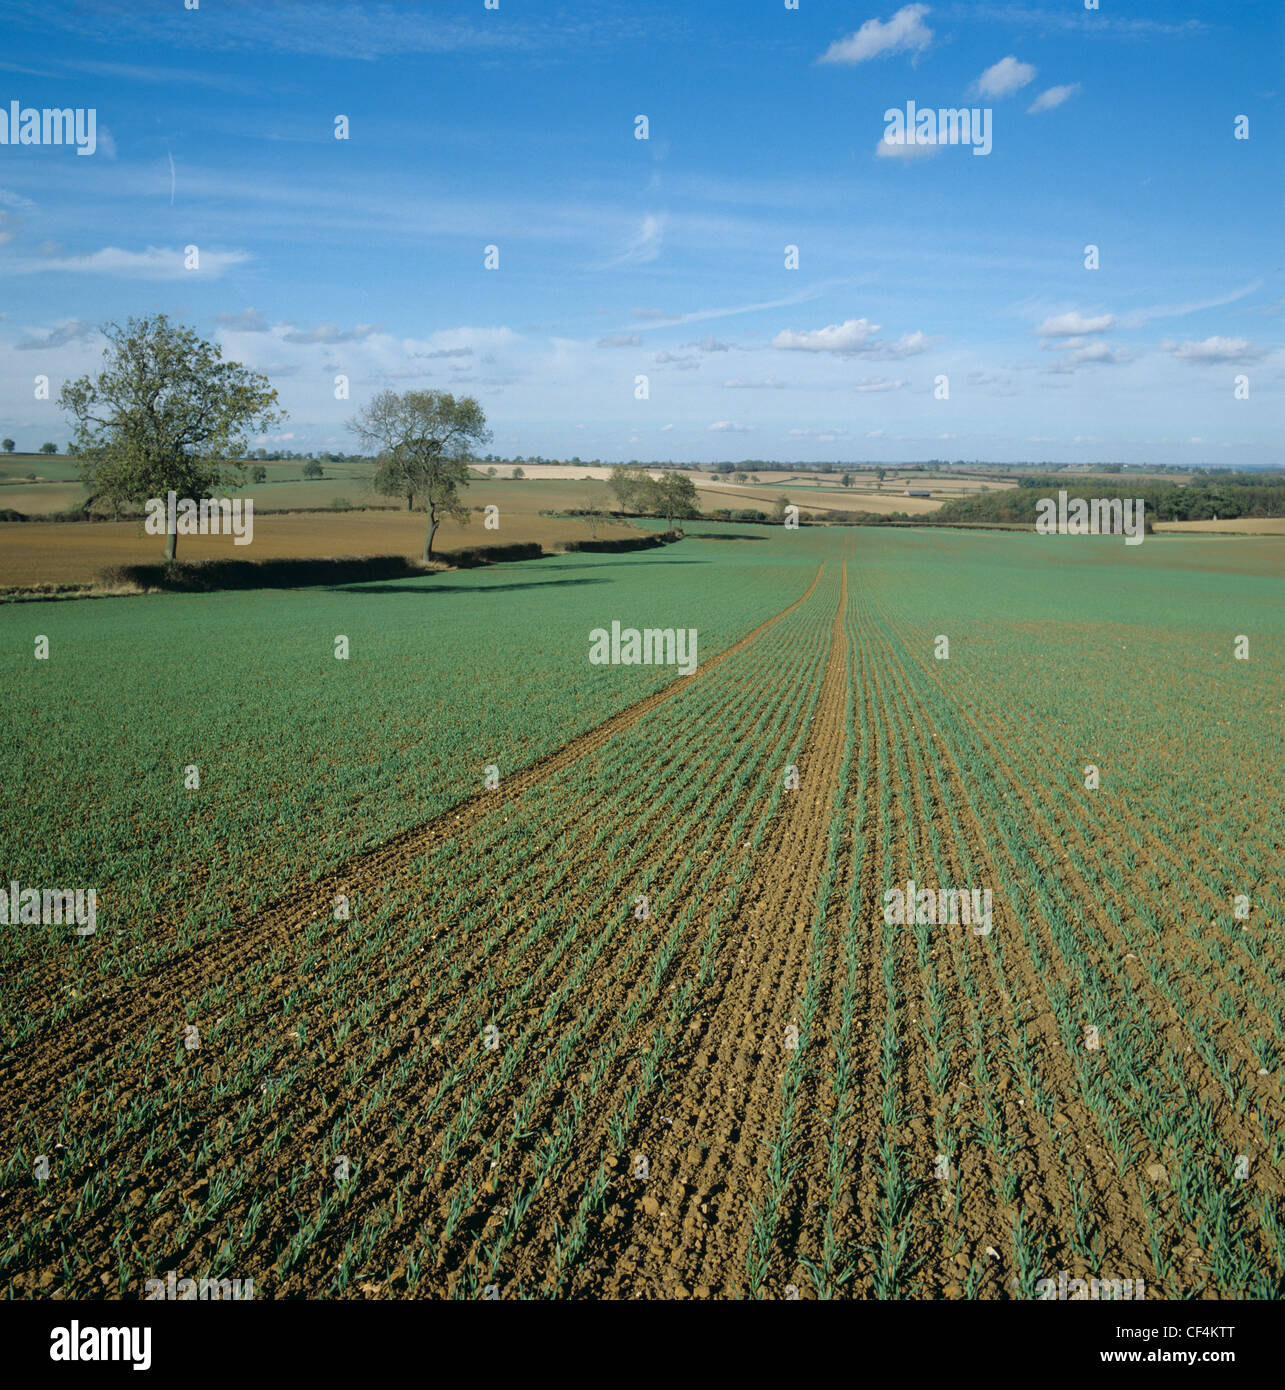 View over young seedling barley crop at about stage 21 on a fine autumn day - Stock Image